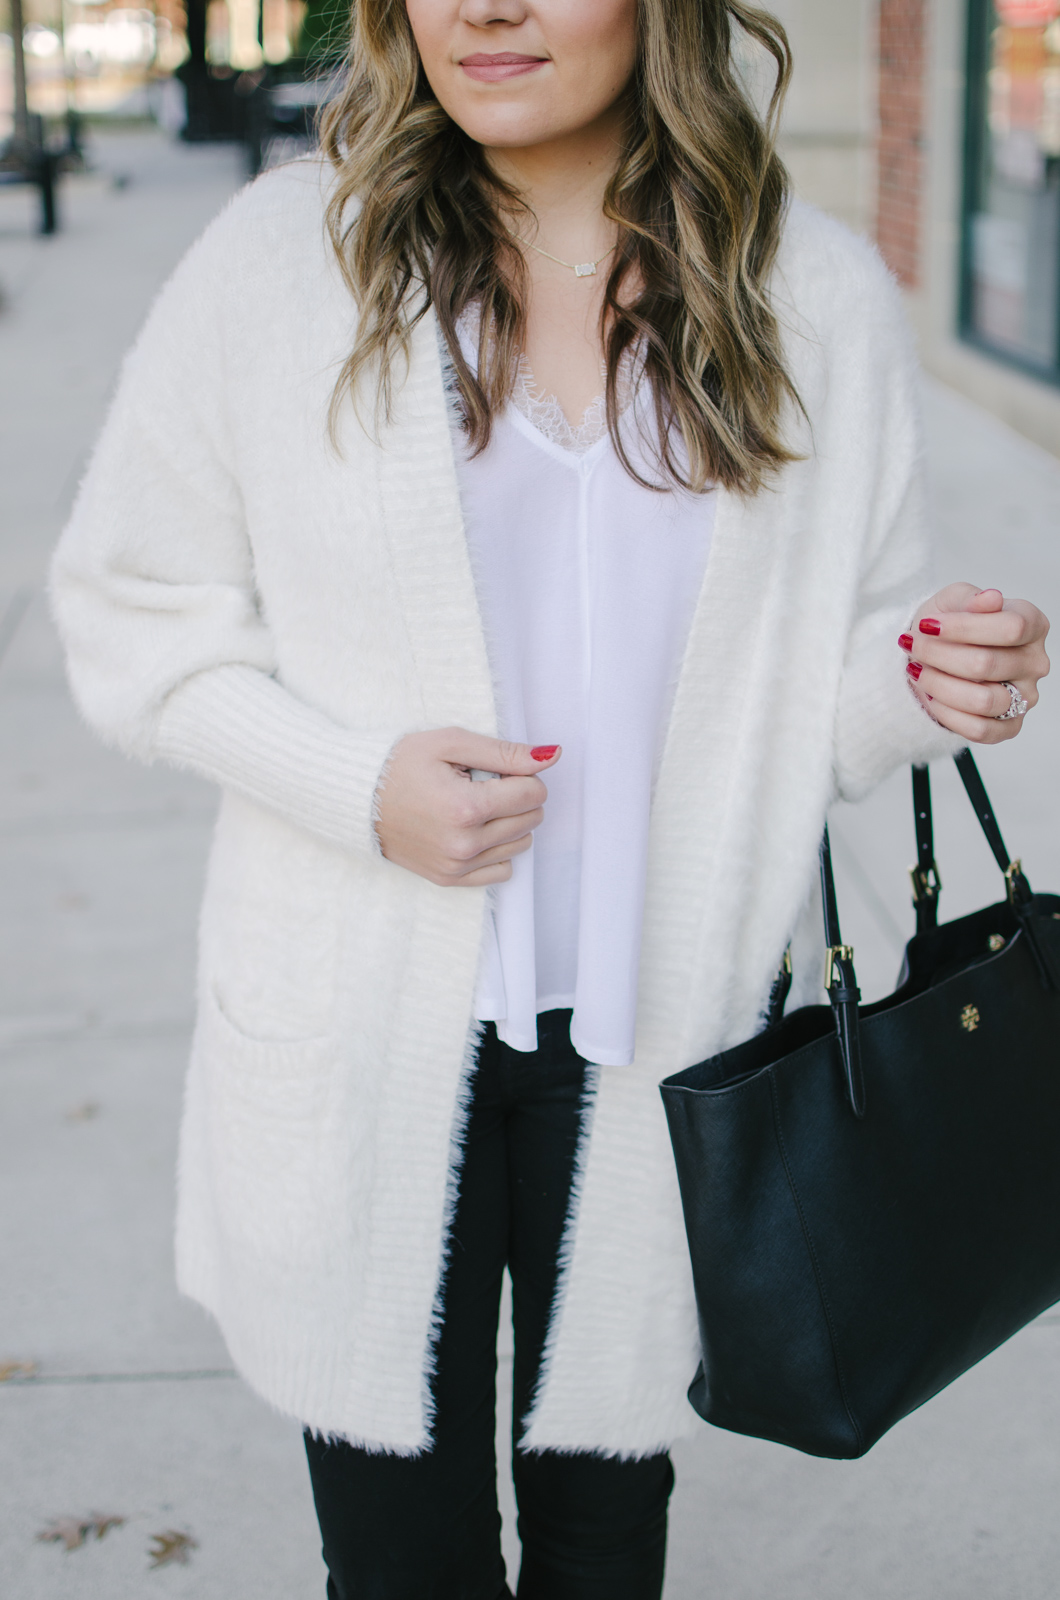 winter white outfit - such a gorgeous lace cami and fuzzy cardi! | Get outfit details or see more cute casual Winter outfits at bylaurenm.com